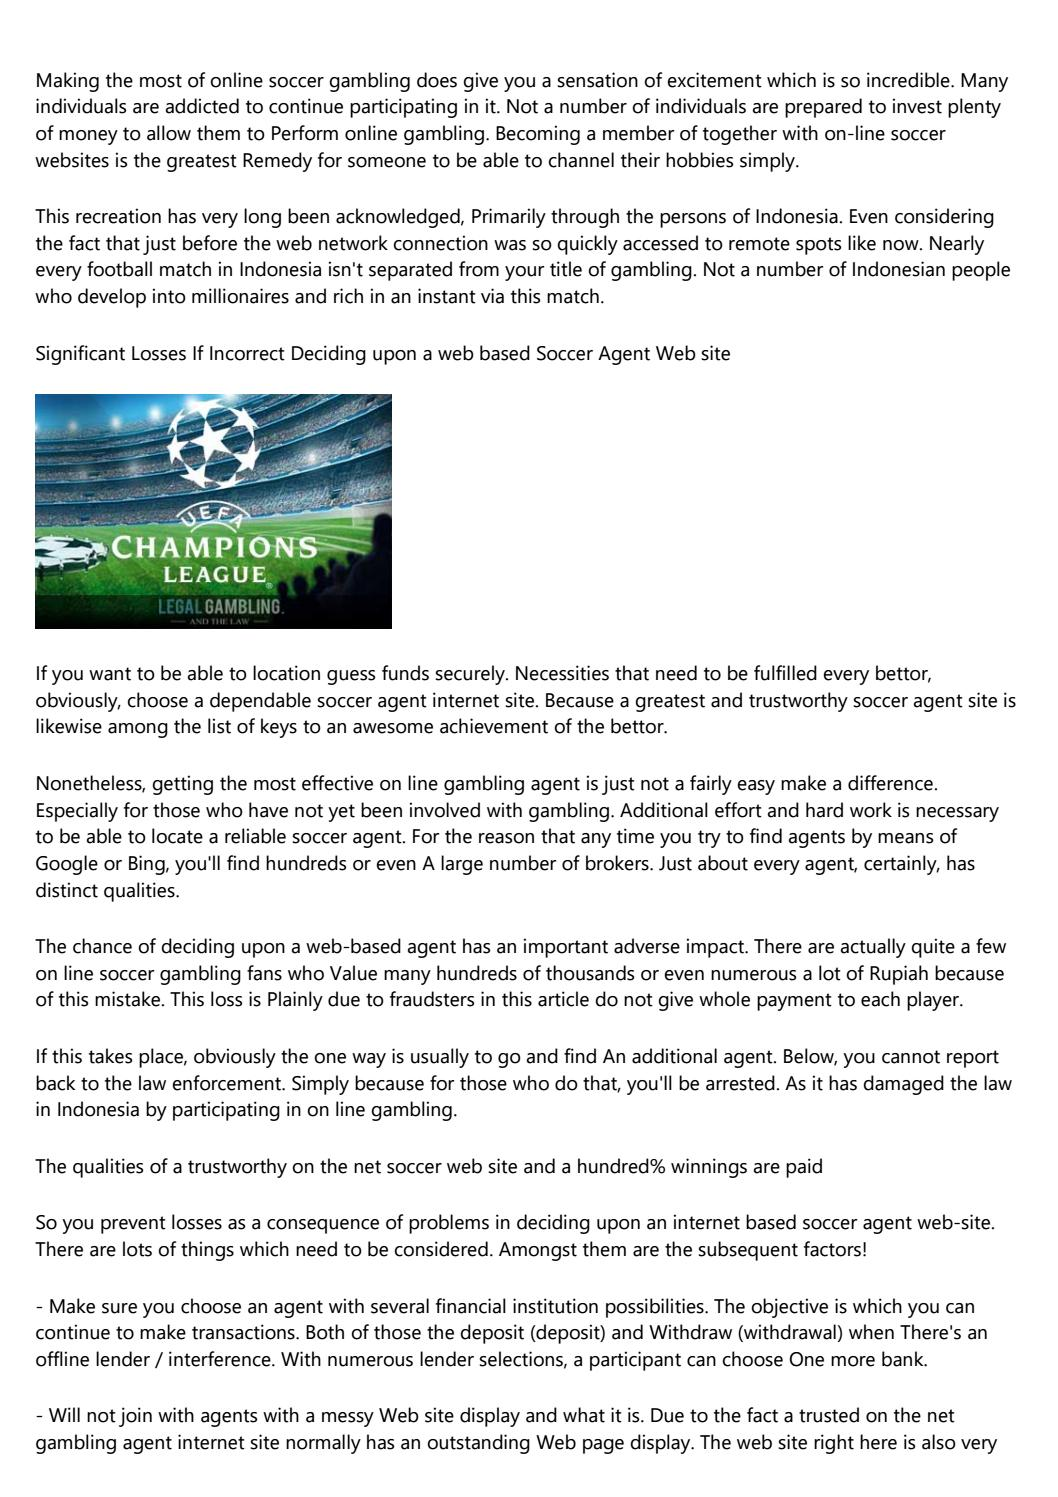 The Attributes Of Trustworthy On The Net Soccer Web Sites And Just About Anything One Hundred Victo By Forlenob5l Issuu